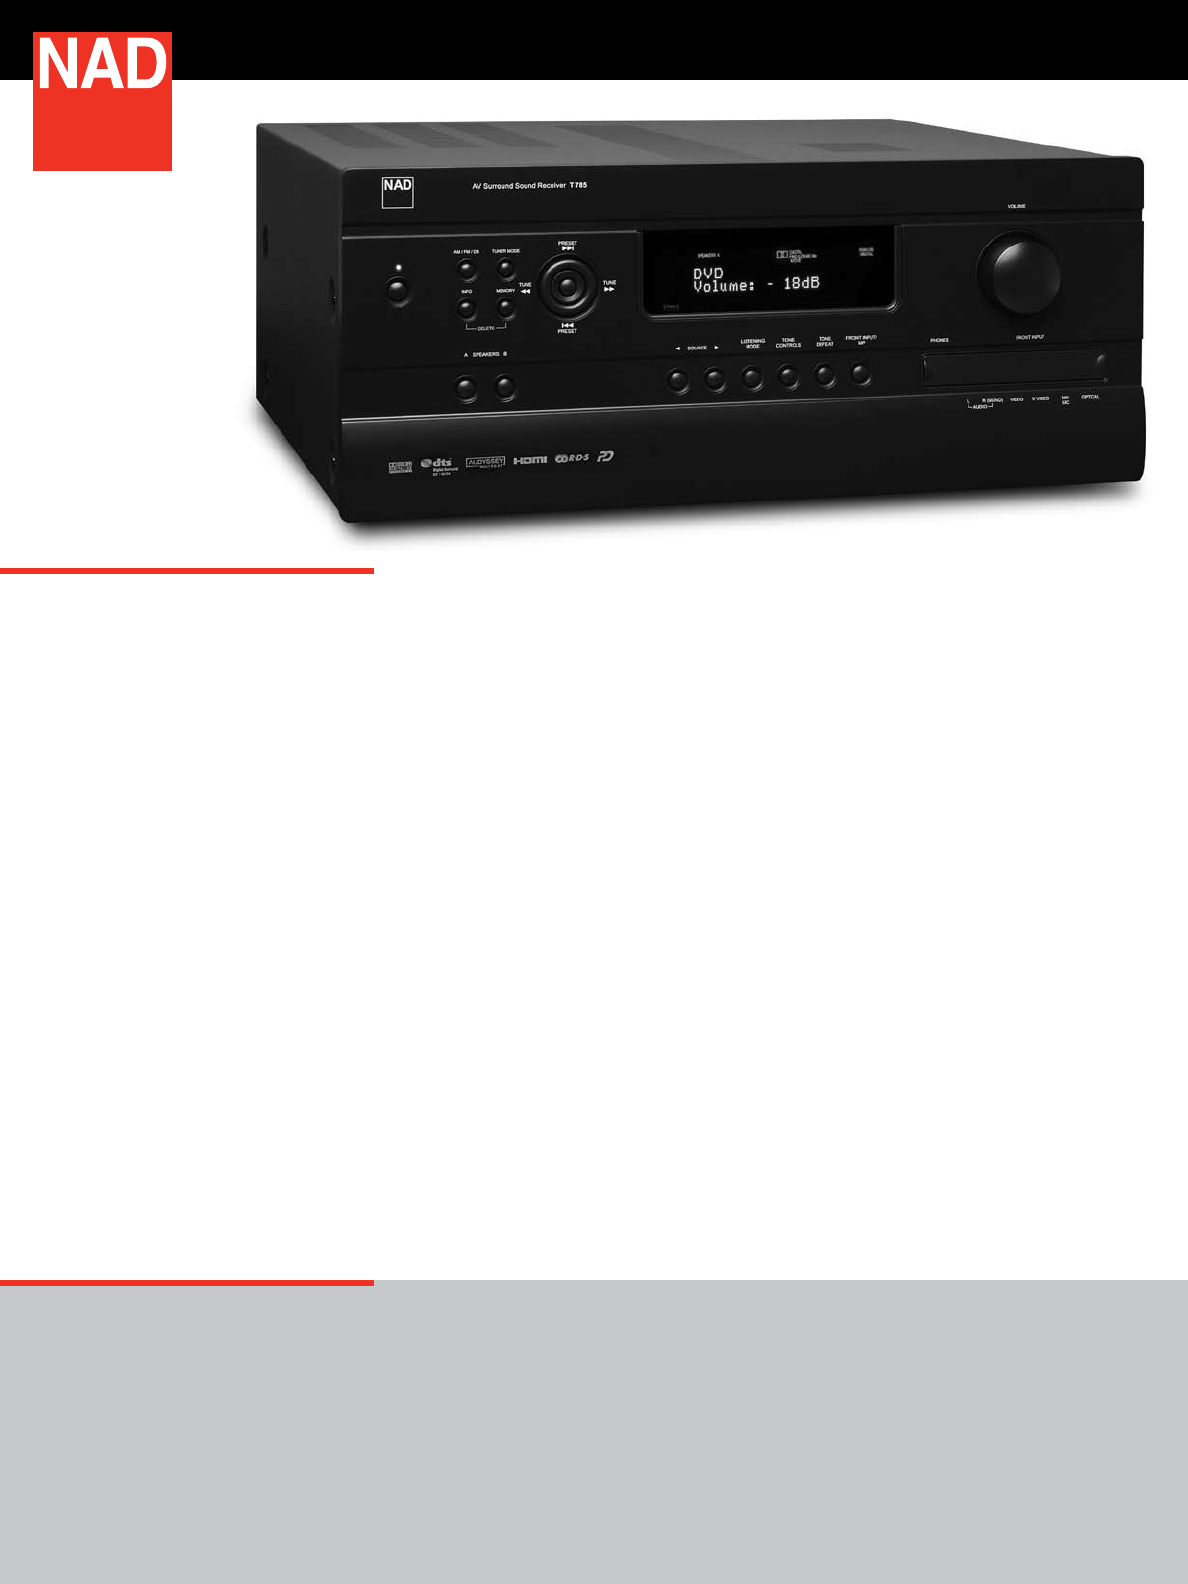 Nad Stereo System T785 User Guide Manualsonlinecom Sound The Is Heir To Many Generations Of Award Winning Designs This Exceptional Pedigree